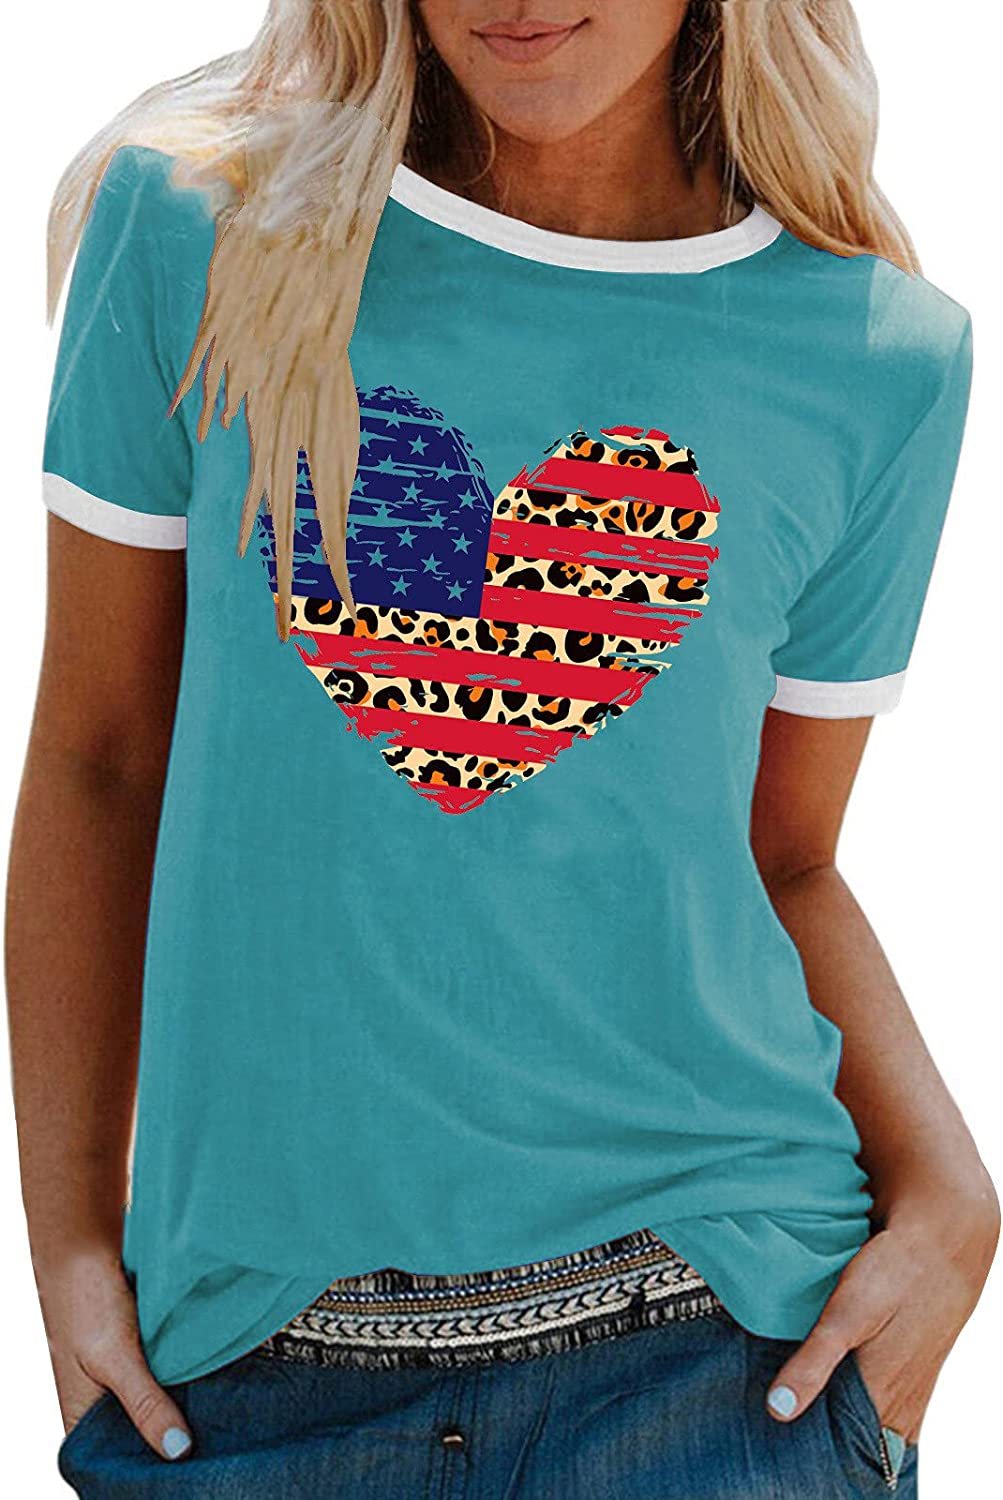 Womens Independence Day Heart-Shaped Pattern Tops Short Sleeve Round Neck Tee Loose T Shirt Printed Tunic